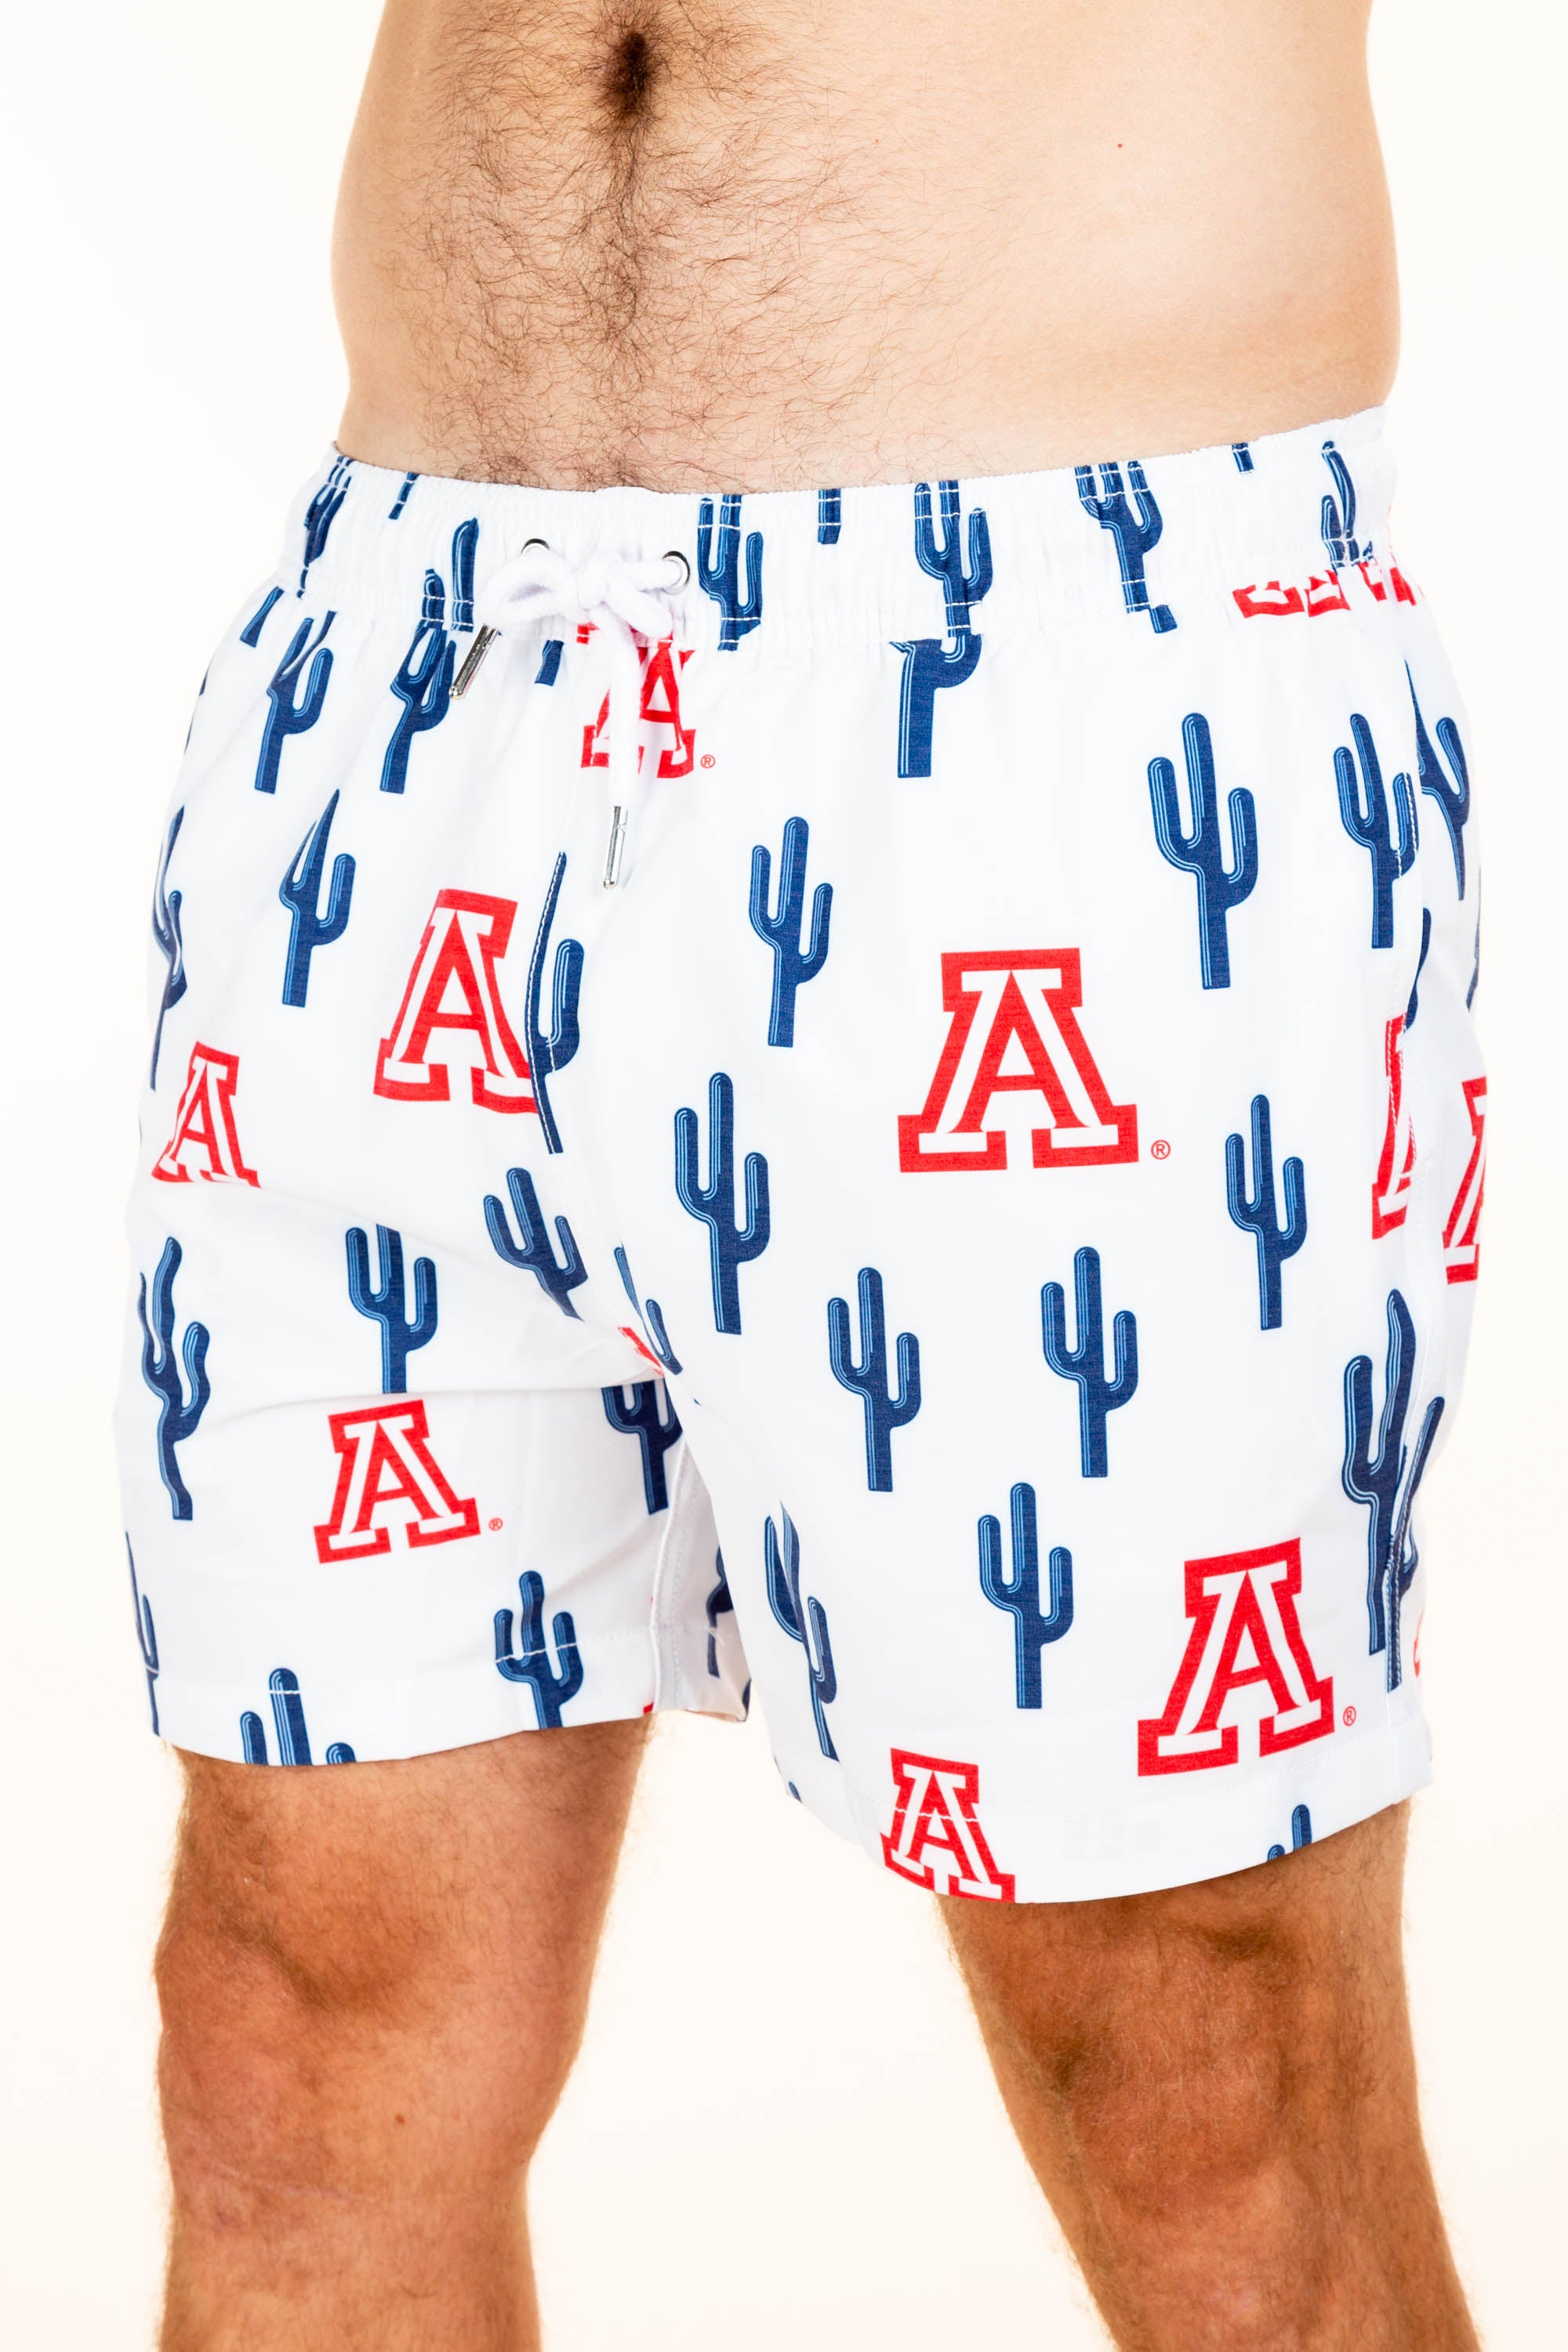 University of Arizona Cactus swim trunks